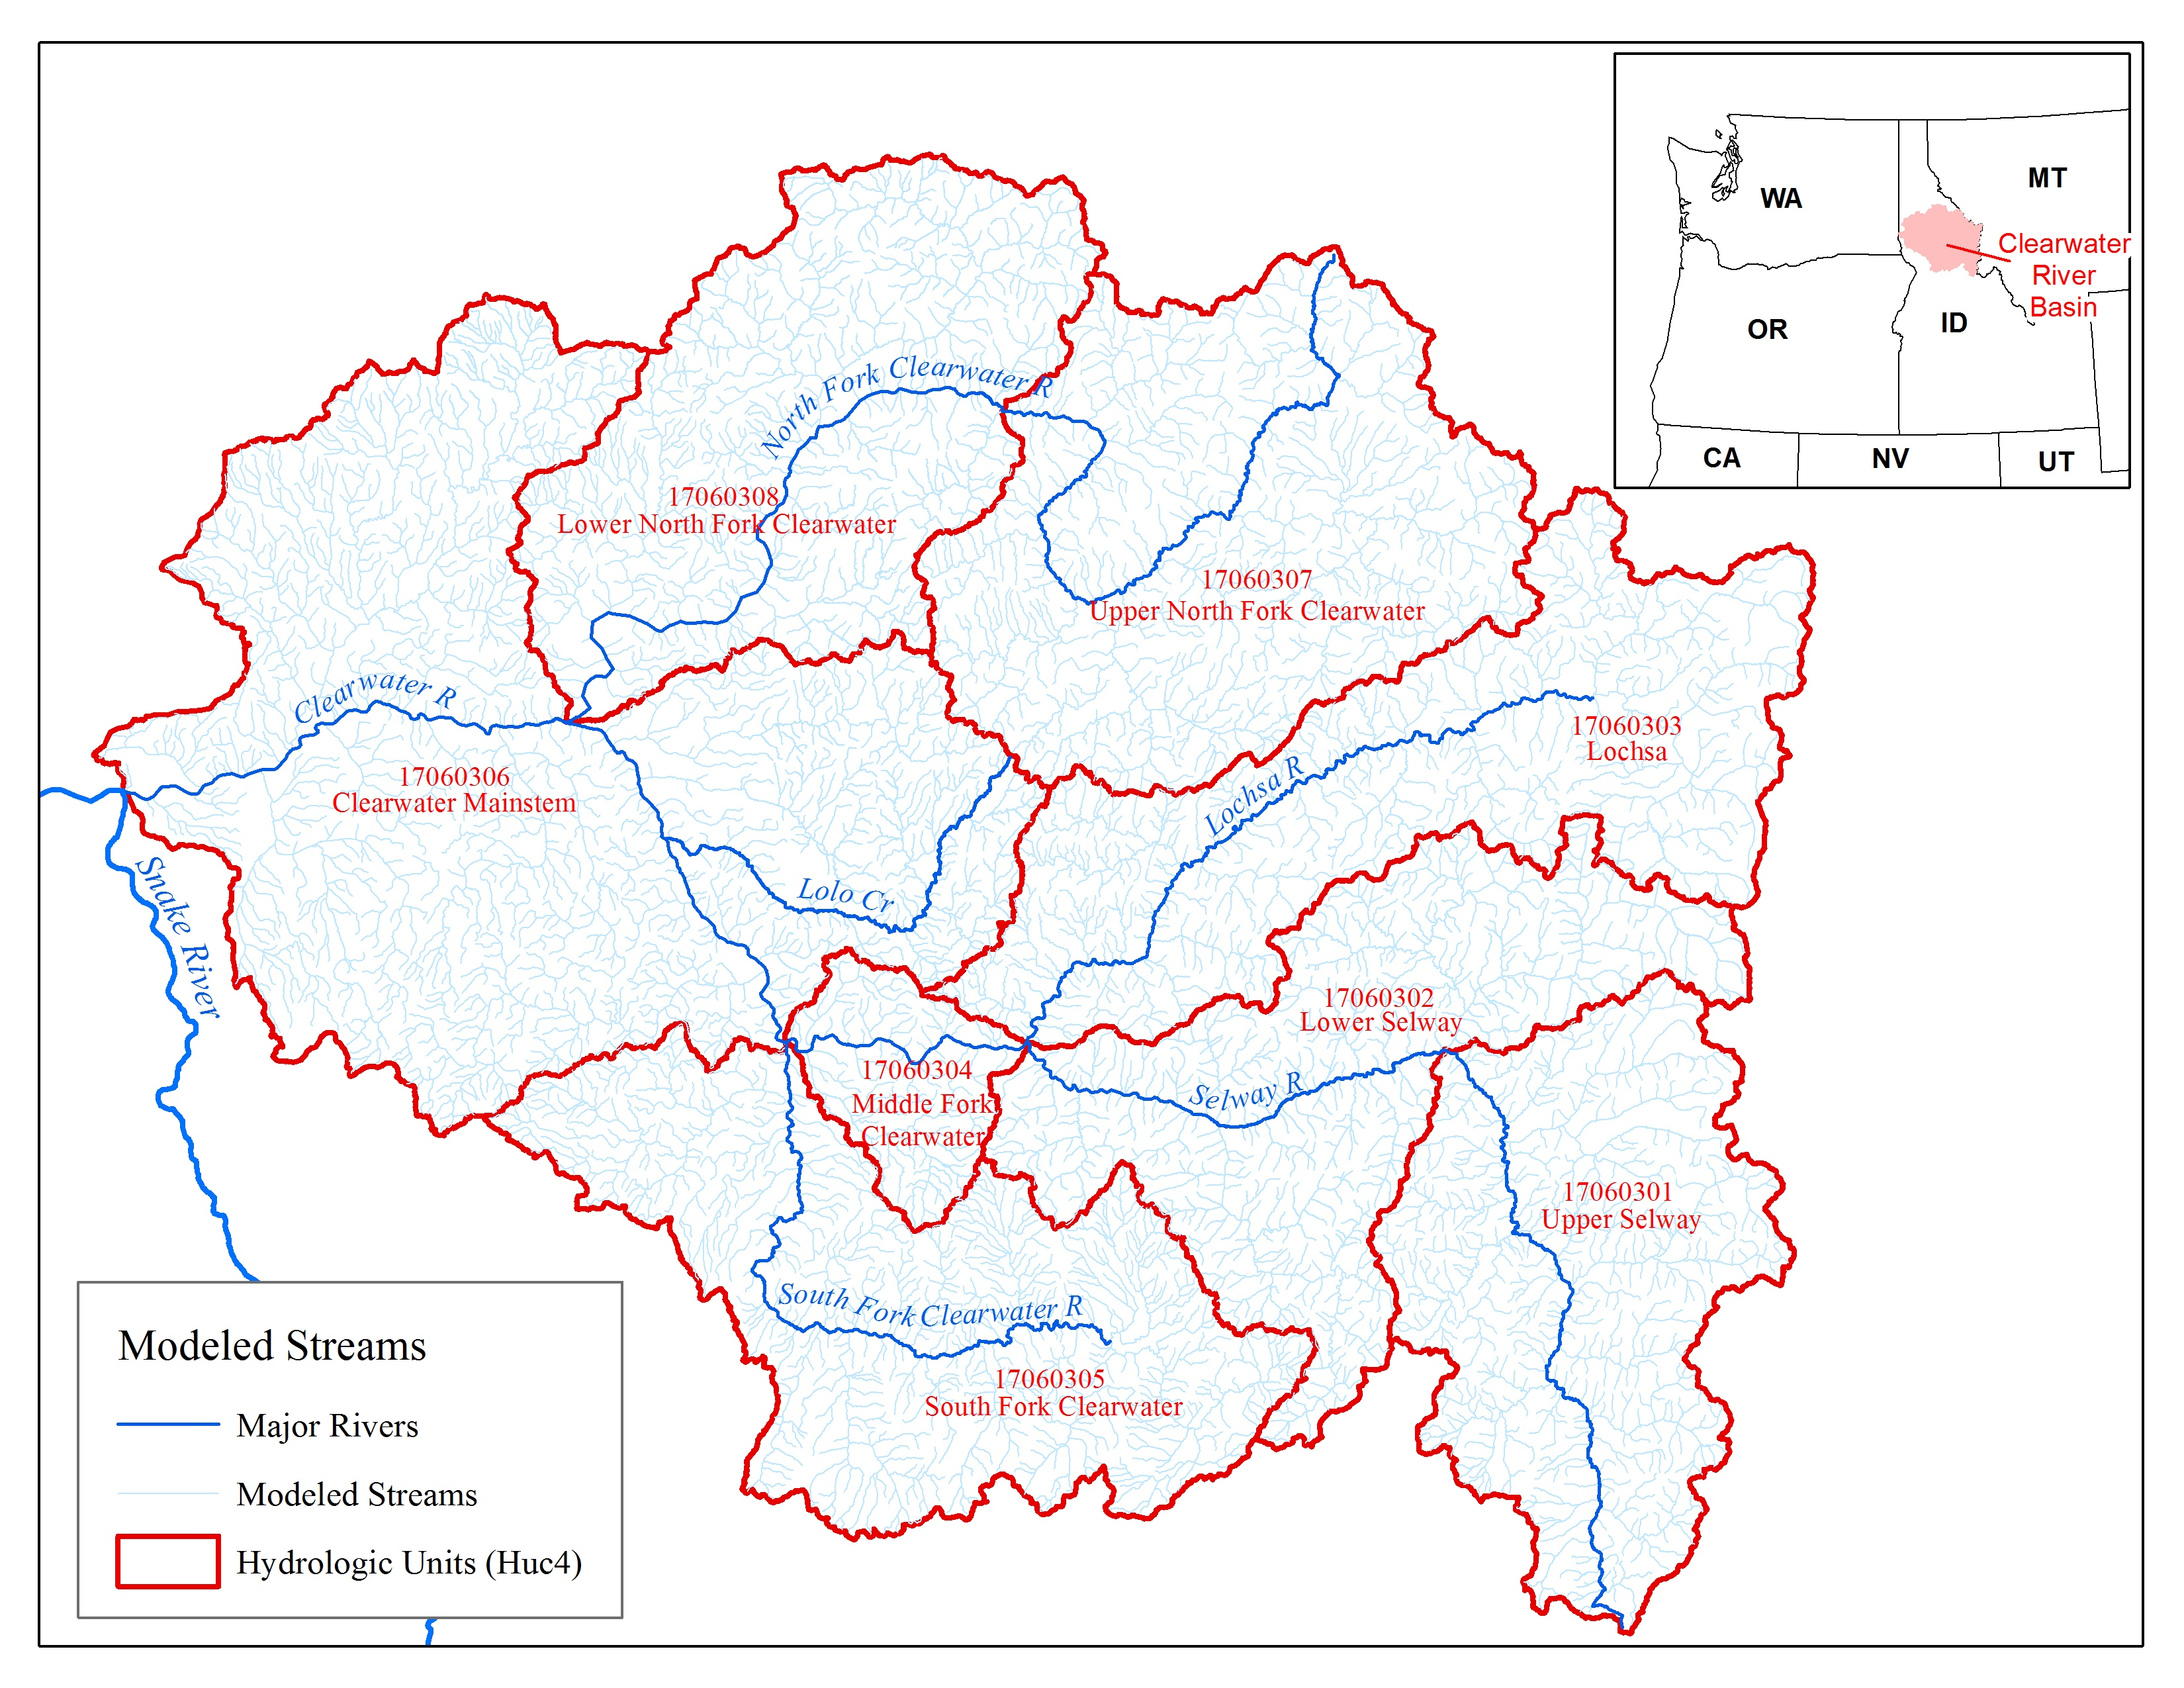 Columbia River Inter-Tribal Fish Commision data download